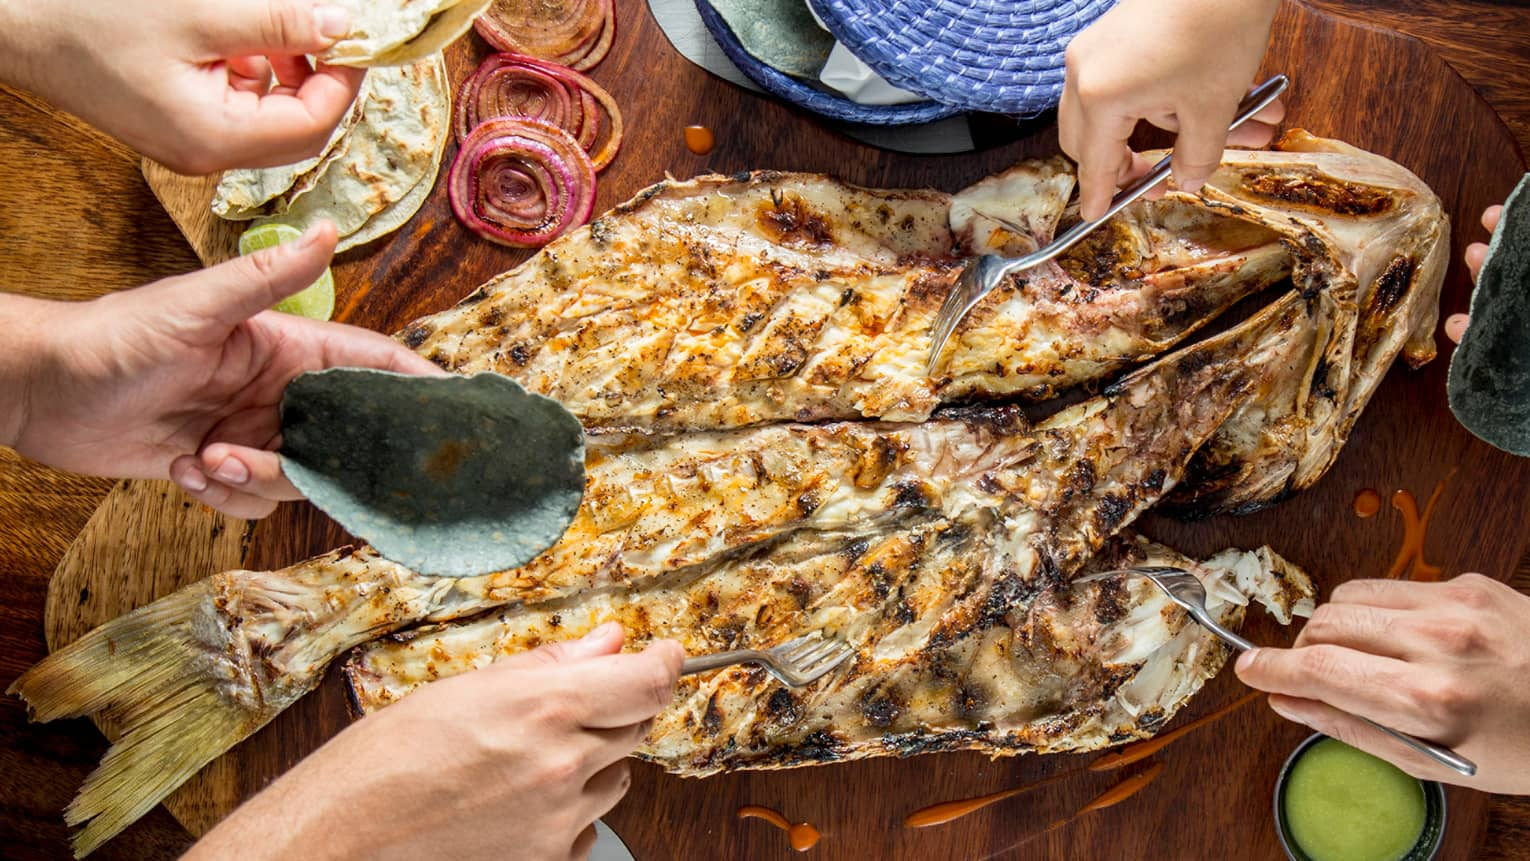 Aerial view of table, hands holding forks, digging into whole grilled fish on platter